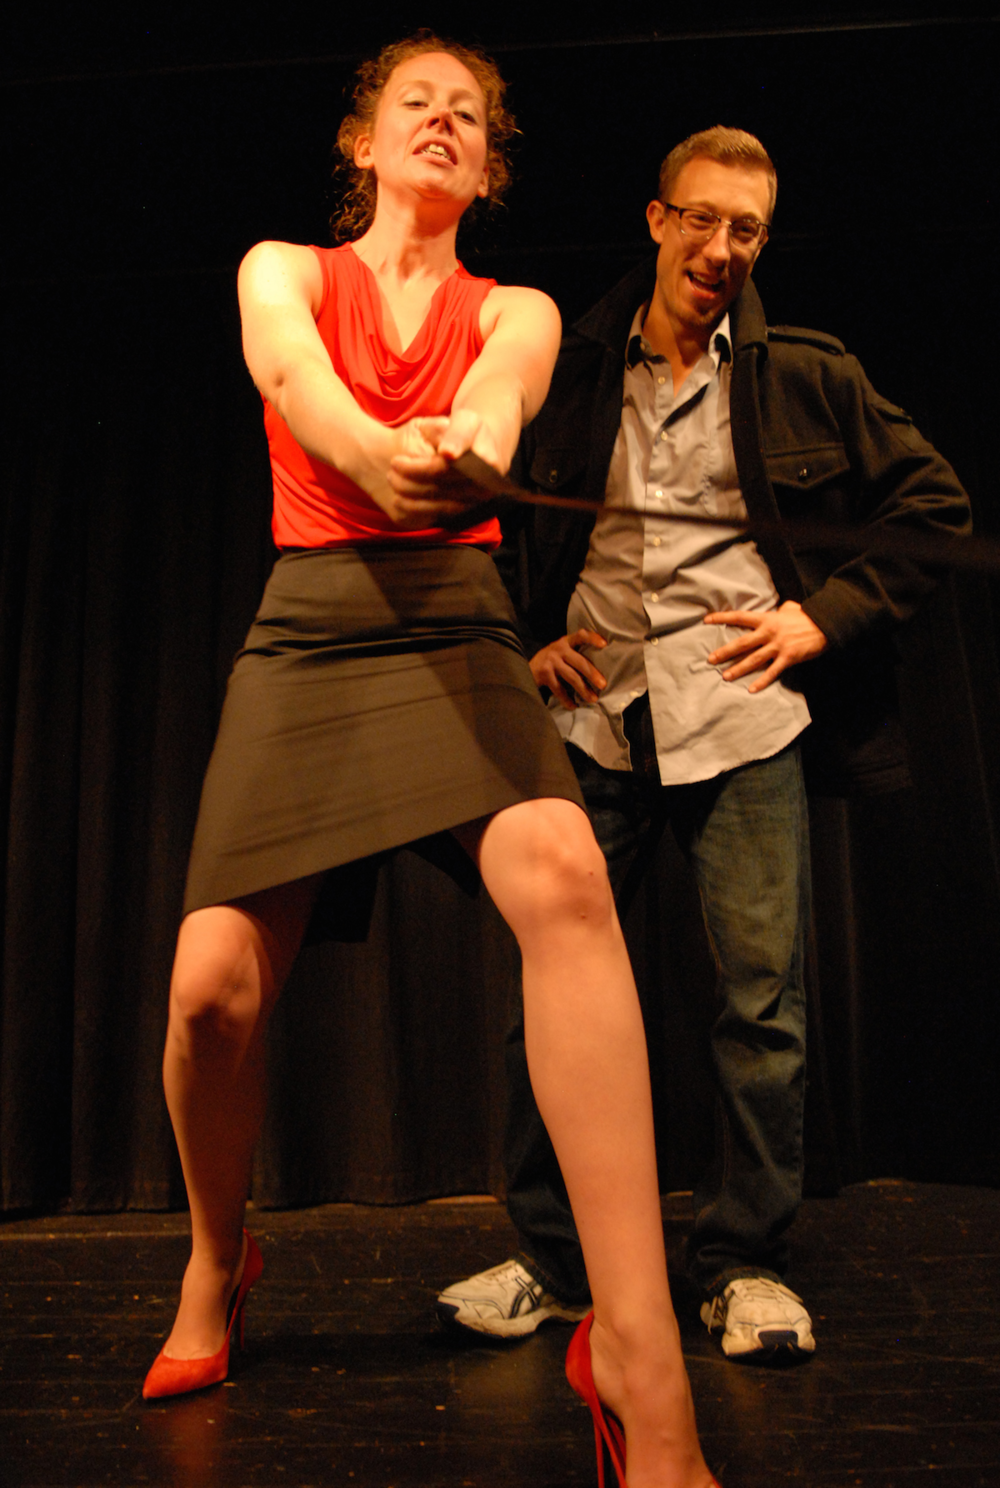 Anna Botsford as Mia; Elliot Sicard as Mike